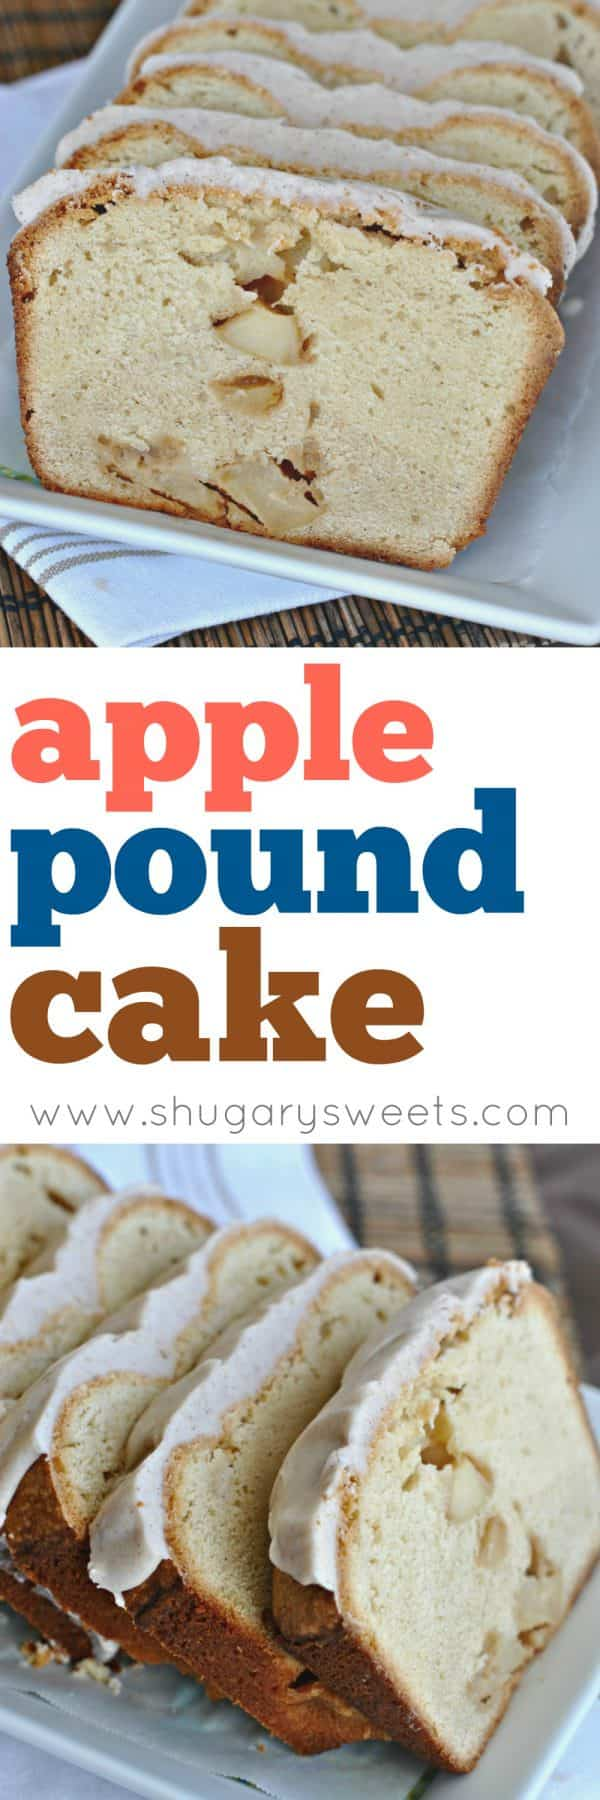 Rich, buttery, cream cheesePound Cake filled with chunks of Apples. Take it to the next level with a Cinnamon glaze!